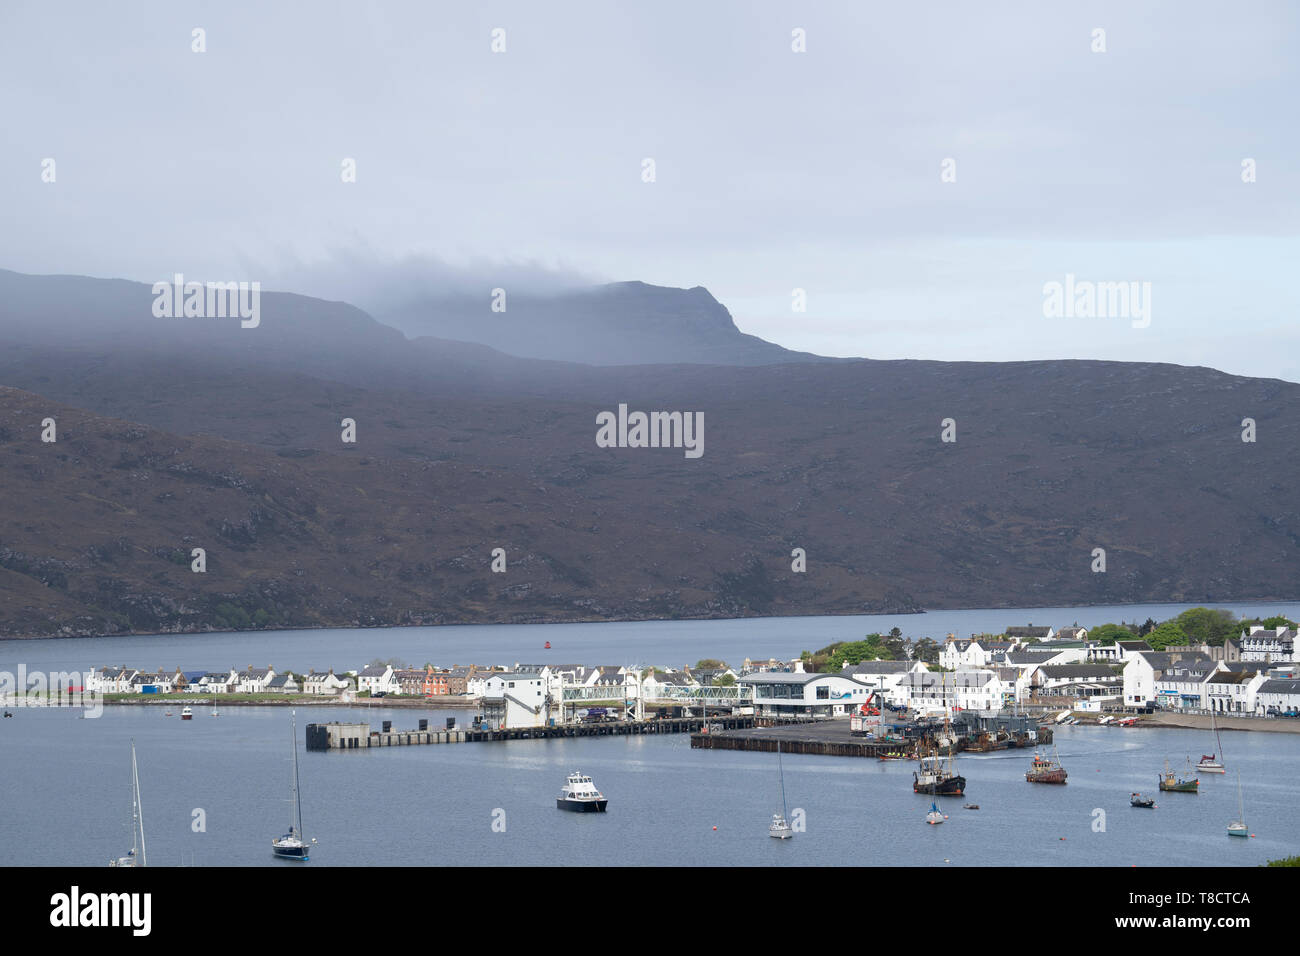 View of Ullapool on  the North Coast 500 scenic driving route in northern Scotland, UK - Stock Image